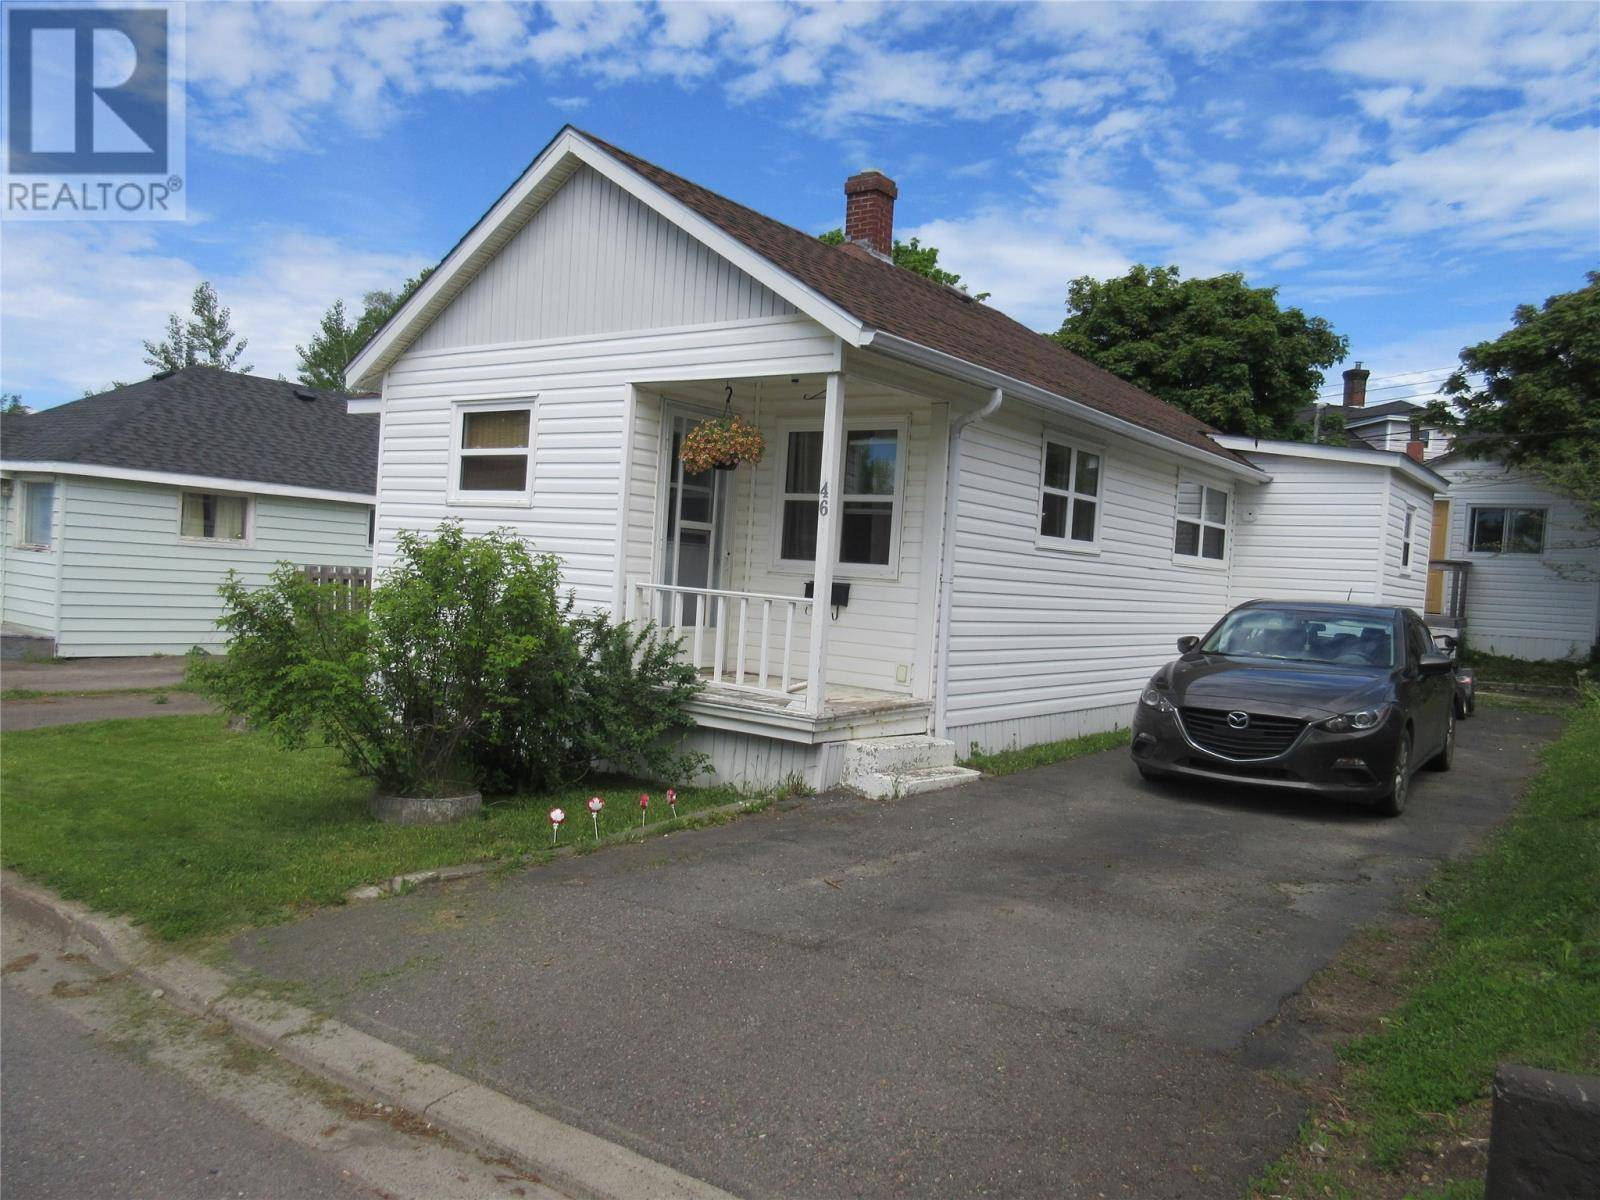 House for sale at 46 Beaumont Ave Grand Falls-windsor Newfoundland - MLS: 1198508